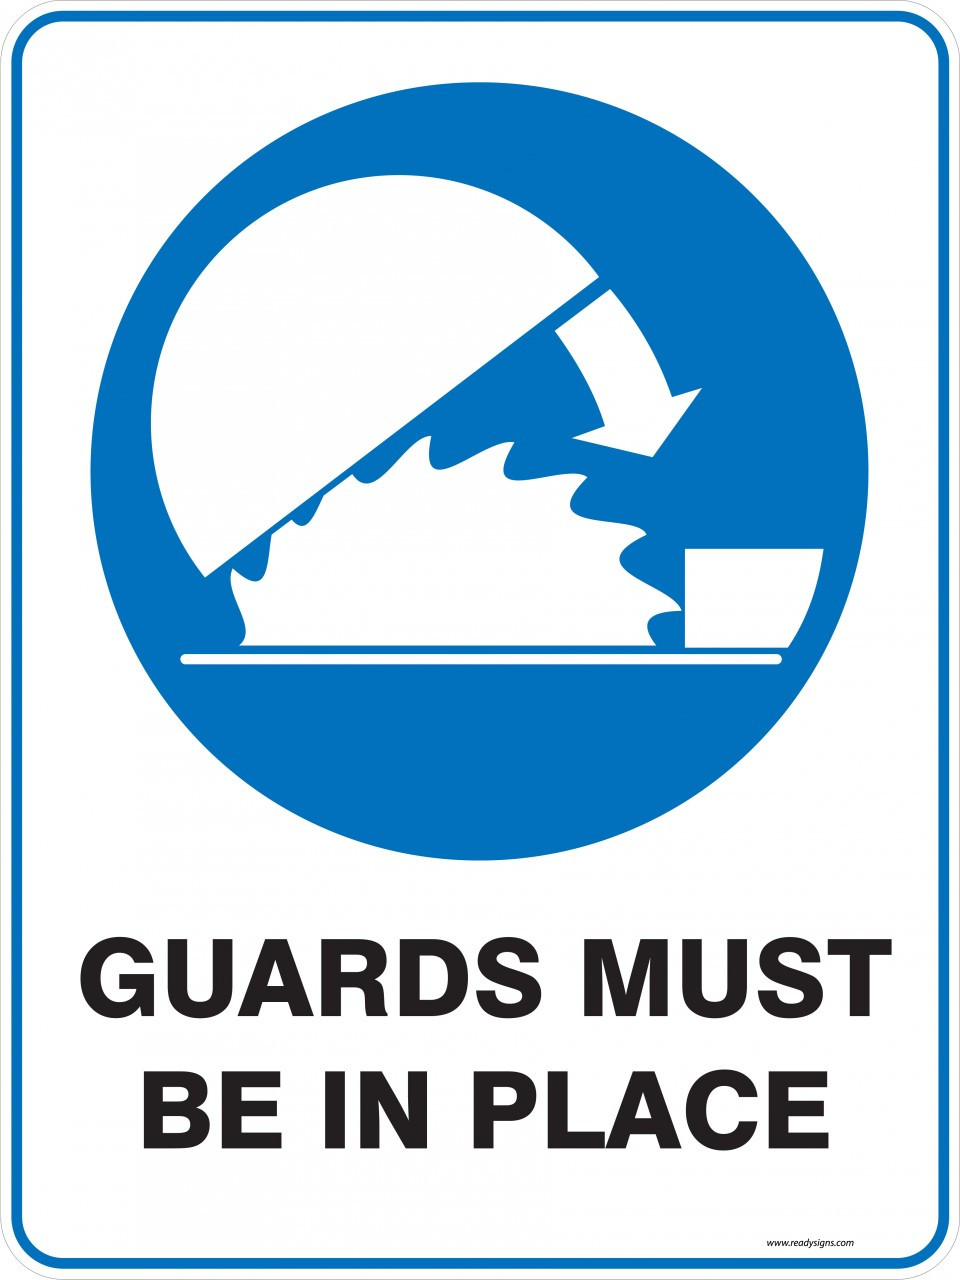 Mandatory Sign  Guards Must Be In Place  Ready Signs. Dark Side Signs. Singh Signs Of Stroke. Creative Direction Signs. Rec Room Signs. Fury Signs. Blade Signs Of Stroke. Public Safety Signs. Increased Thirst Signs